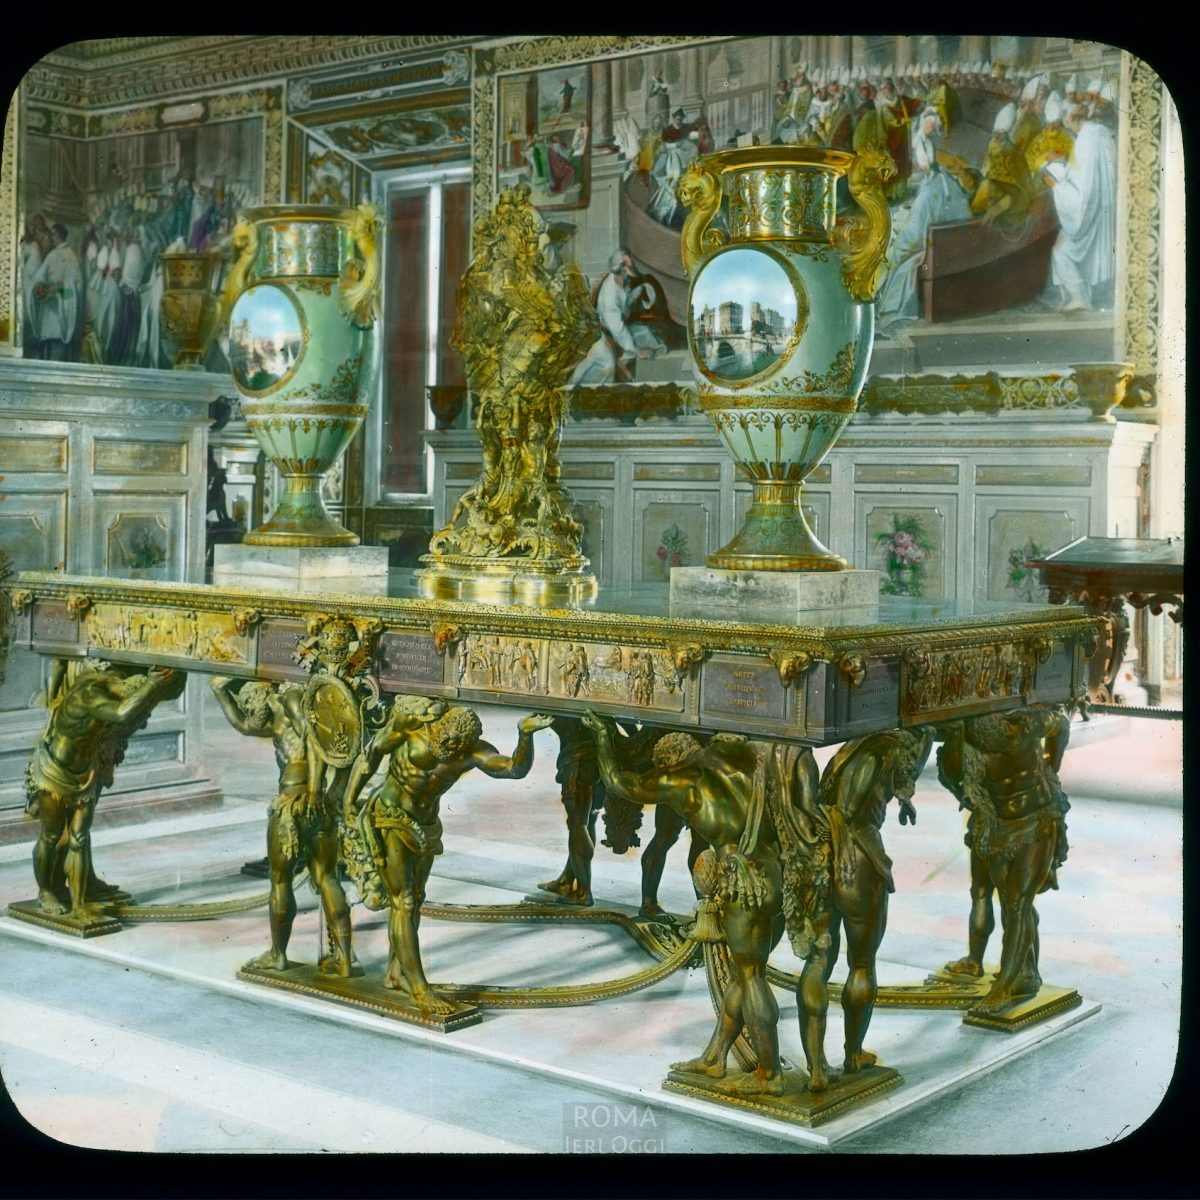 Vatican City. Vatican Museum, Museo Pio-Clementino: interior, room with large table, two vases with landscapes View in tinted lantern slide, ca. 1919-1938. The museum dates from ca. 1771.